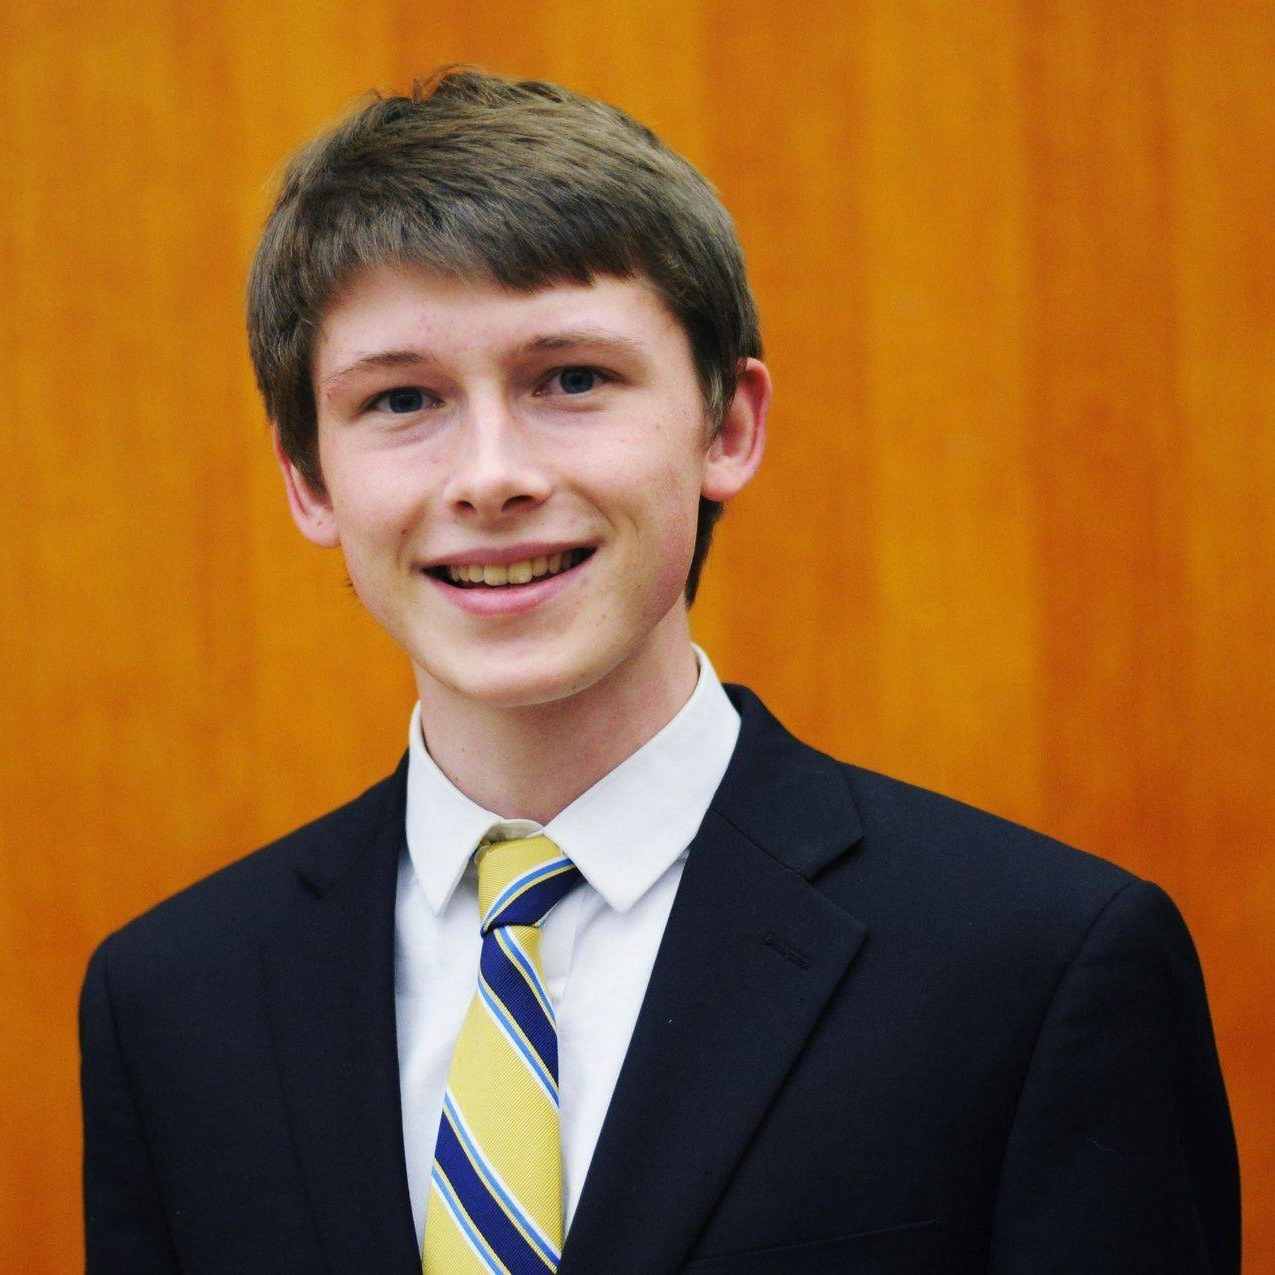 Vaughn Okerlund - Class of 2018 - Major: Computer ScienceOther Activities: Skiing, General exploration of the North CascadesFun Fact: I was born in Barcelona.About Me: I'm a doctor, really.Vaughn's Awards:2015 Anoka Championship Qualifier Tournament - Anoka, MN (Hamline University)All-National Witness (17/20 Ranks)2015 Winston Thomas Memorial Invitational - Berkeley, CA (UC Berkeley)Outstanding Witness (20/20 Ranks)2014 Average American Mock Trial Invitational - Berkeley, CA (UC Berkeley)Outstanding Witness (18/20 Ranks)